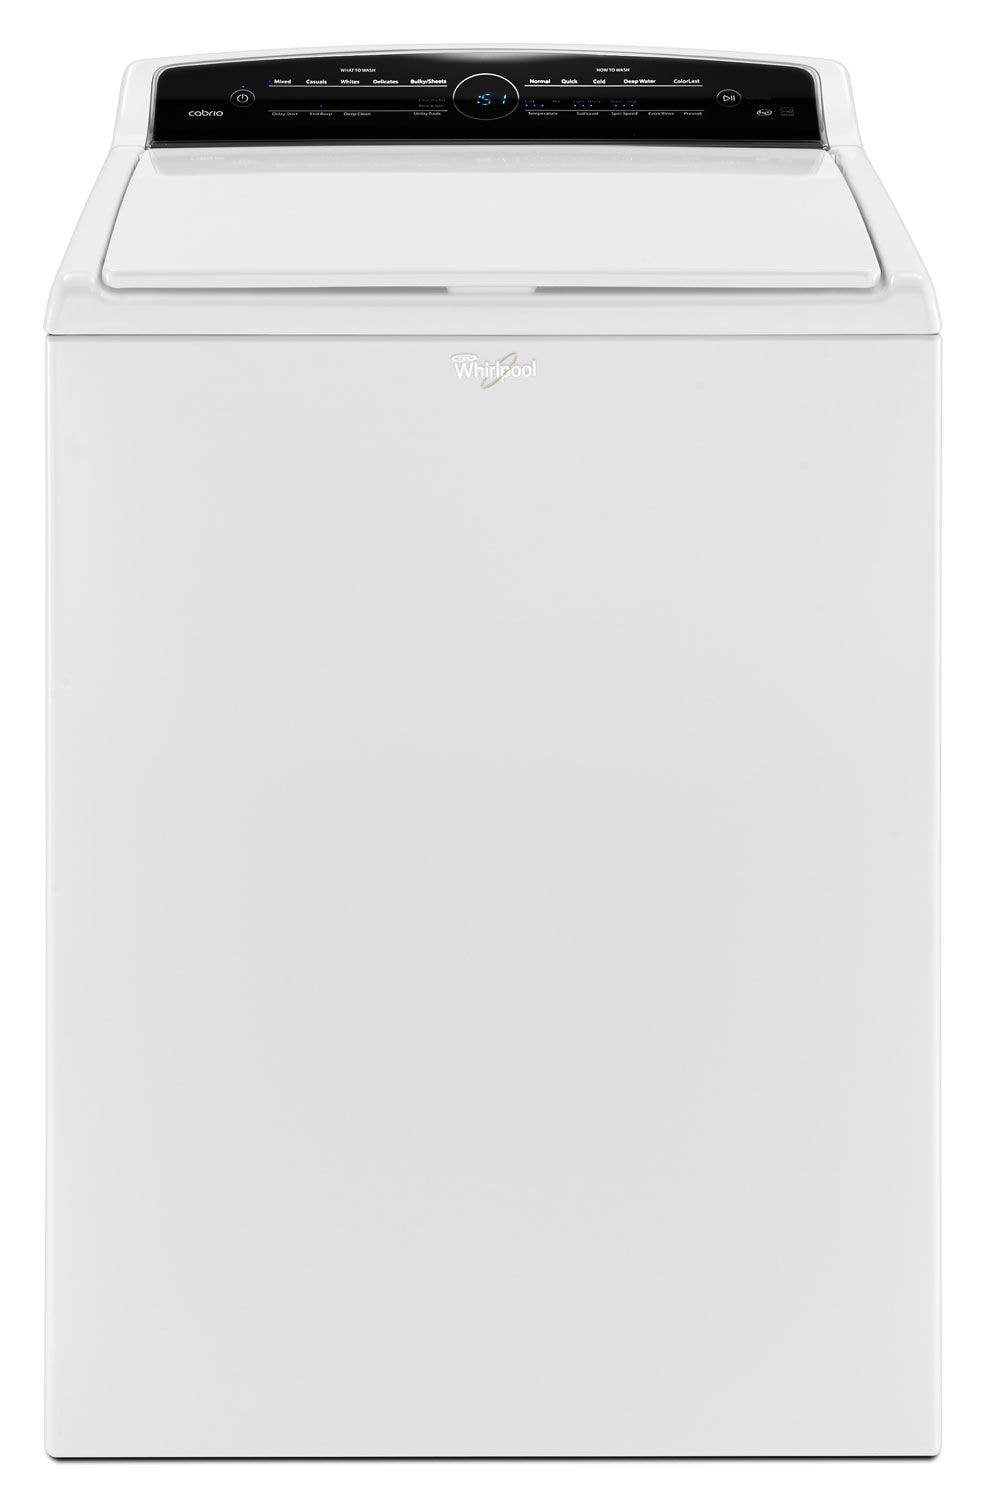 Washers and Dryers - Whirlpool White Top-Load Washer (5.5 Cu. Ft.) - WTW7000DW